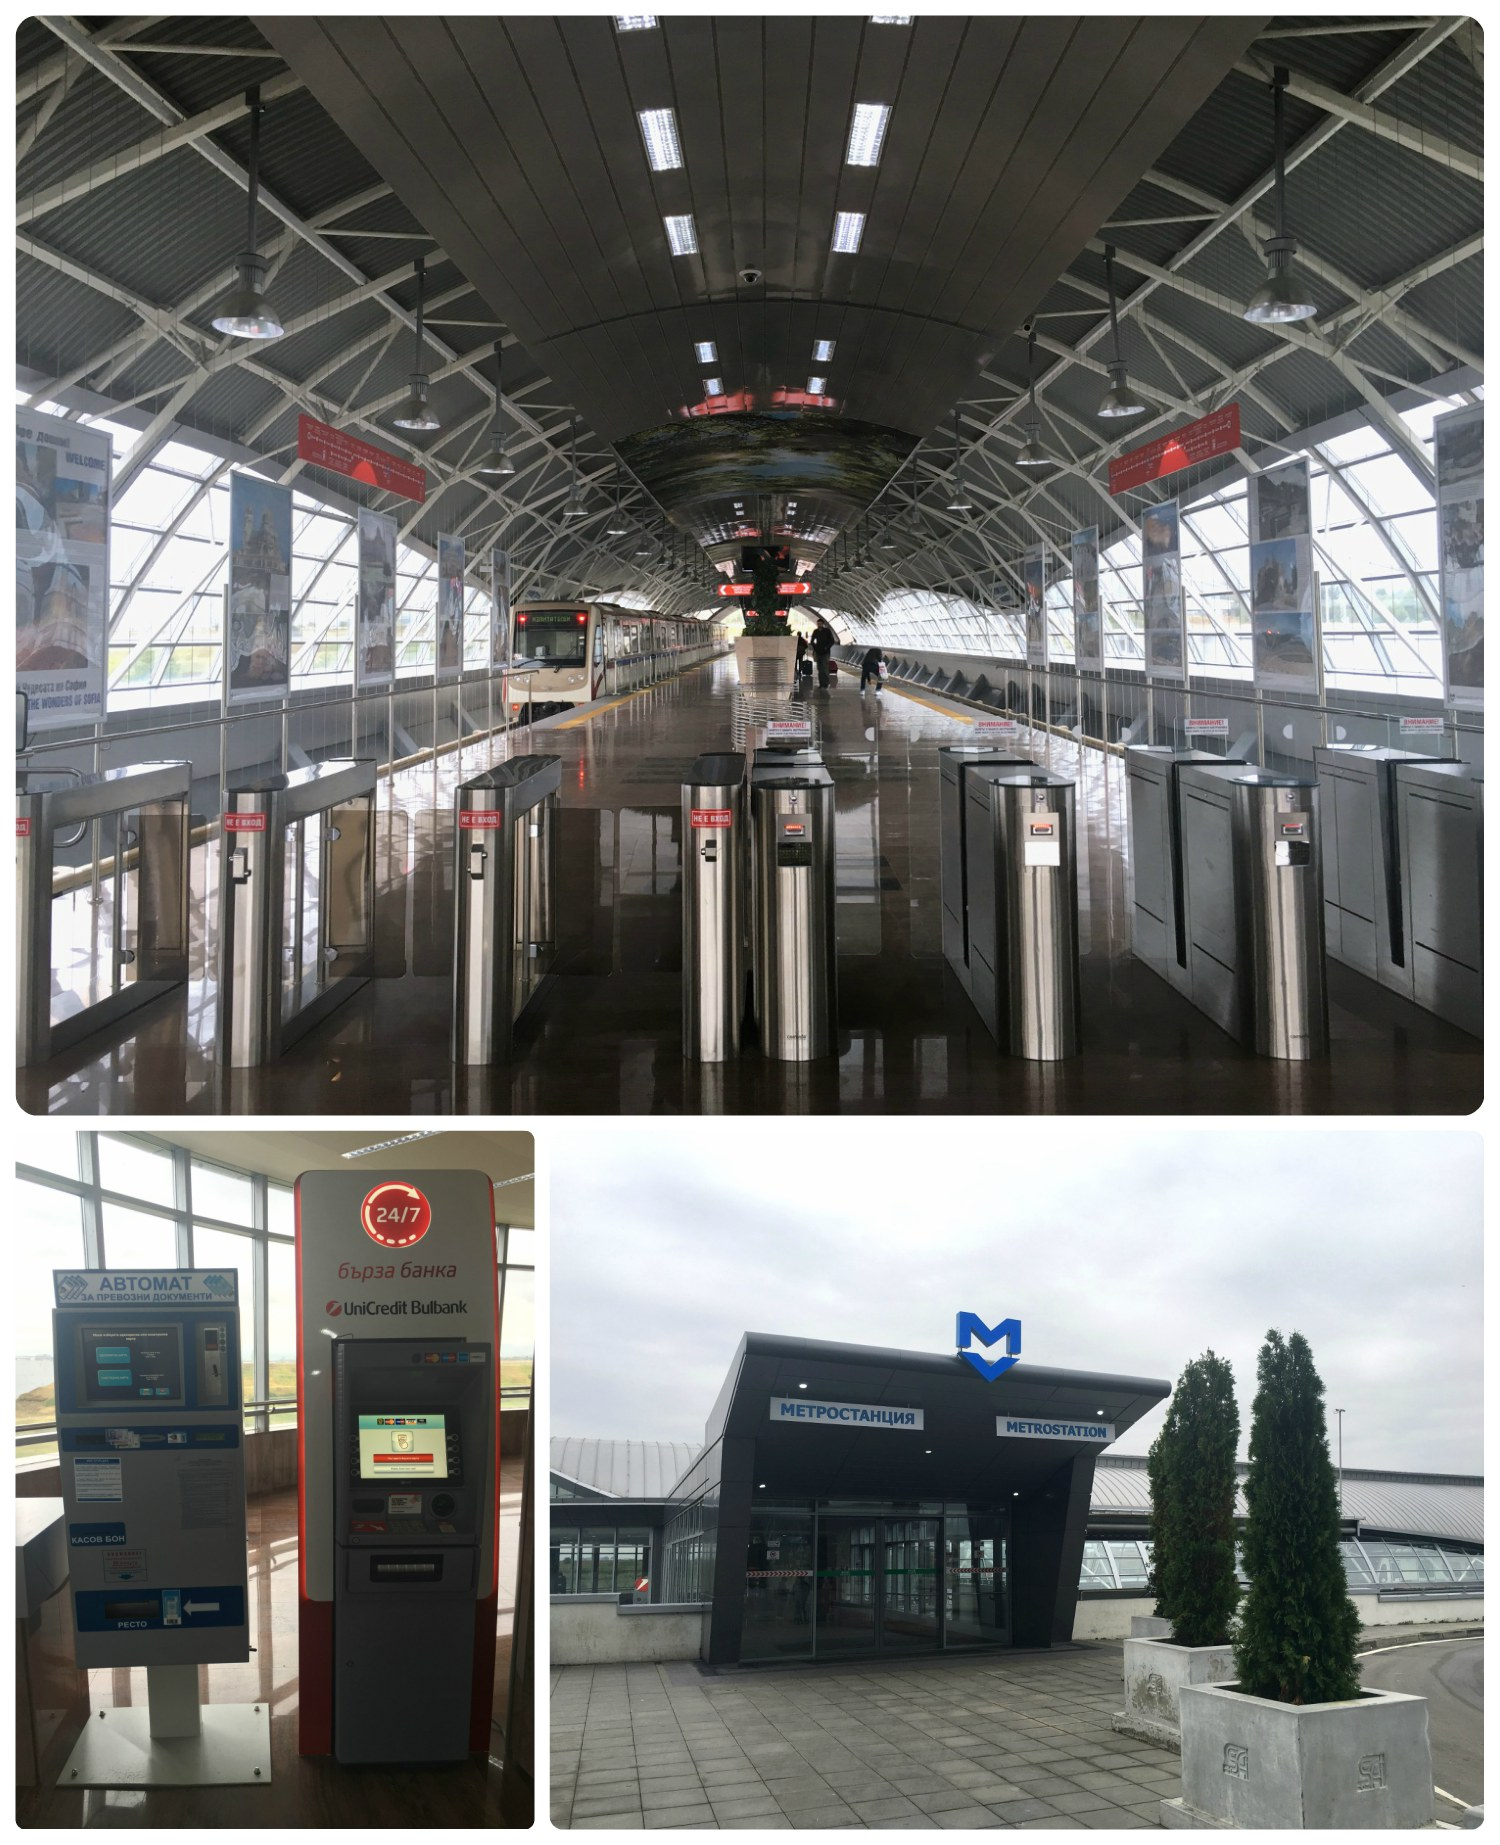 Clockwise (from the top): Inside the metro station at the Sofia Airport in Bulgaria, the entrance to the metro station outside of Terminal 1, a ticket machine and ATM in the airport metro station.